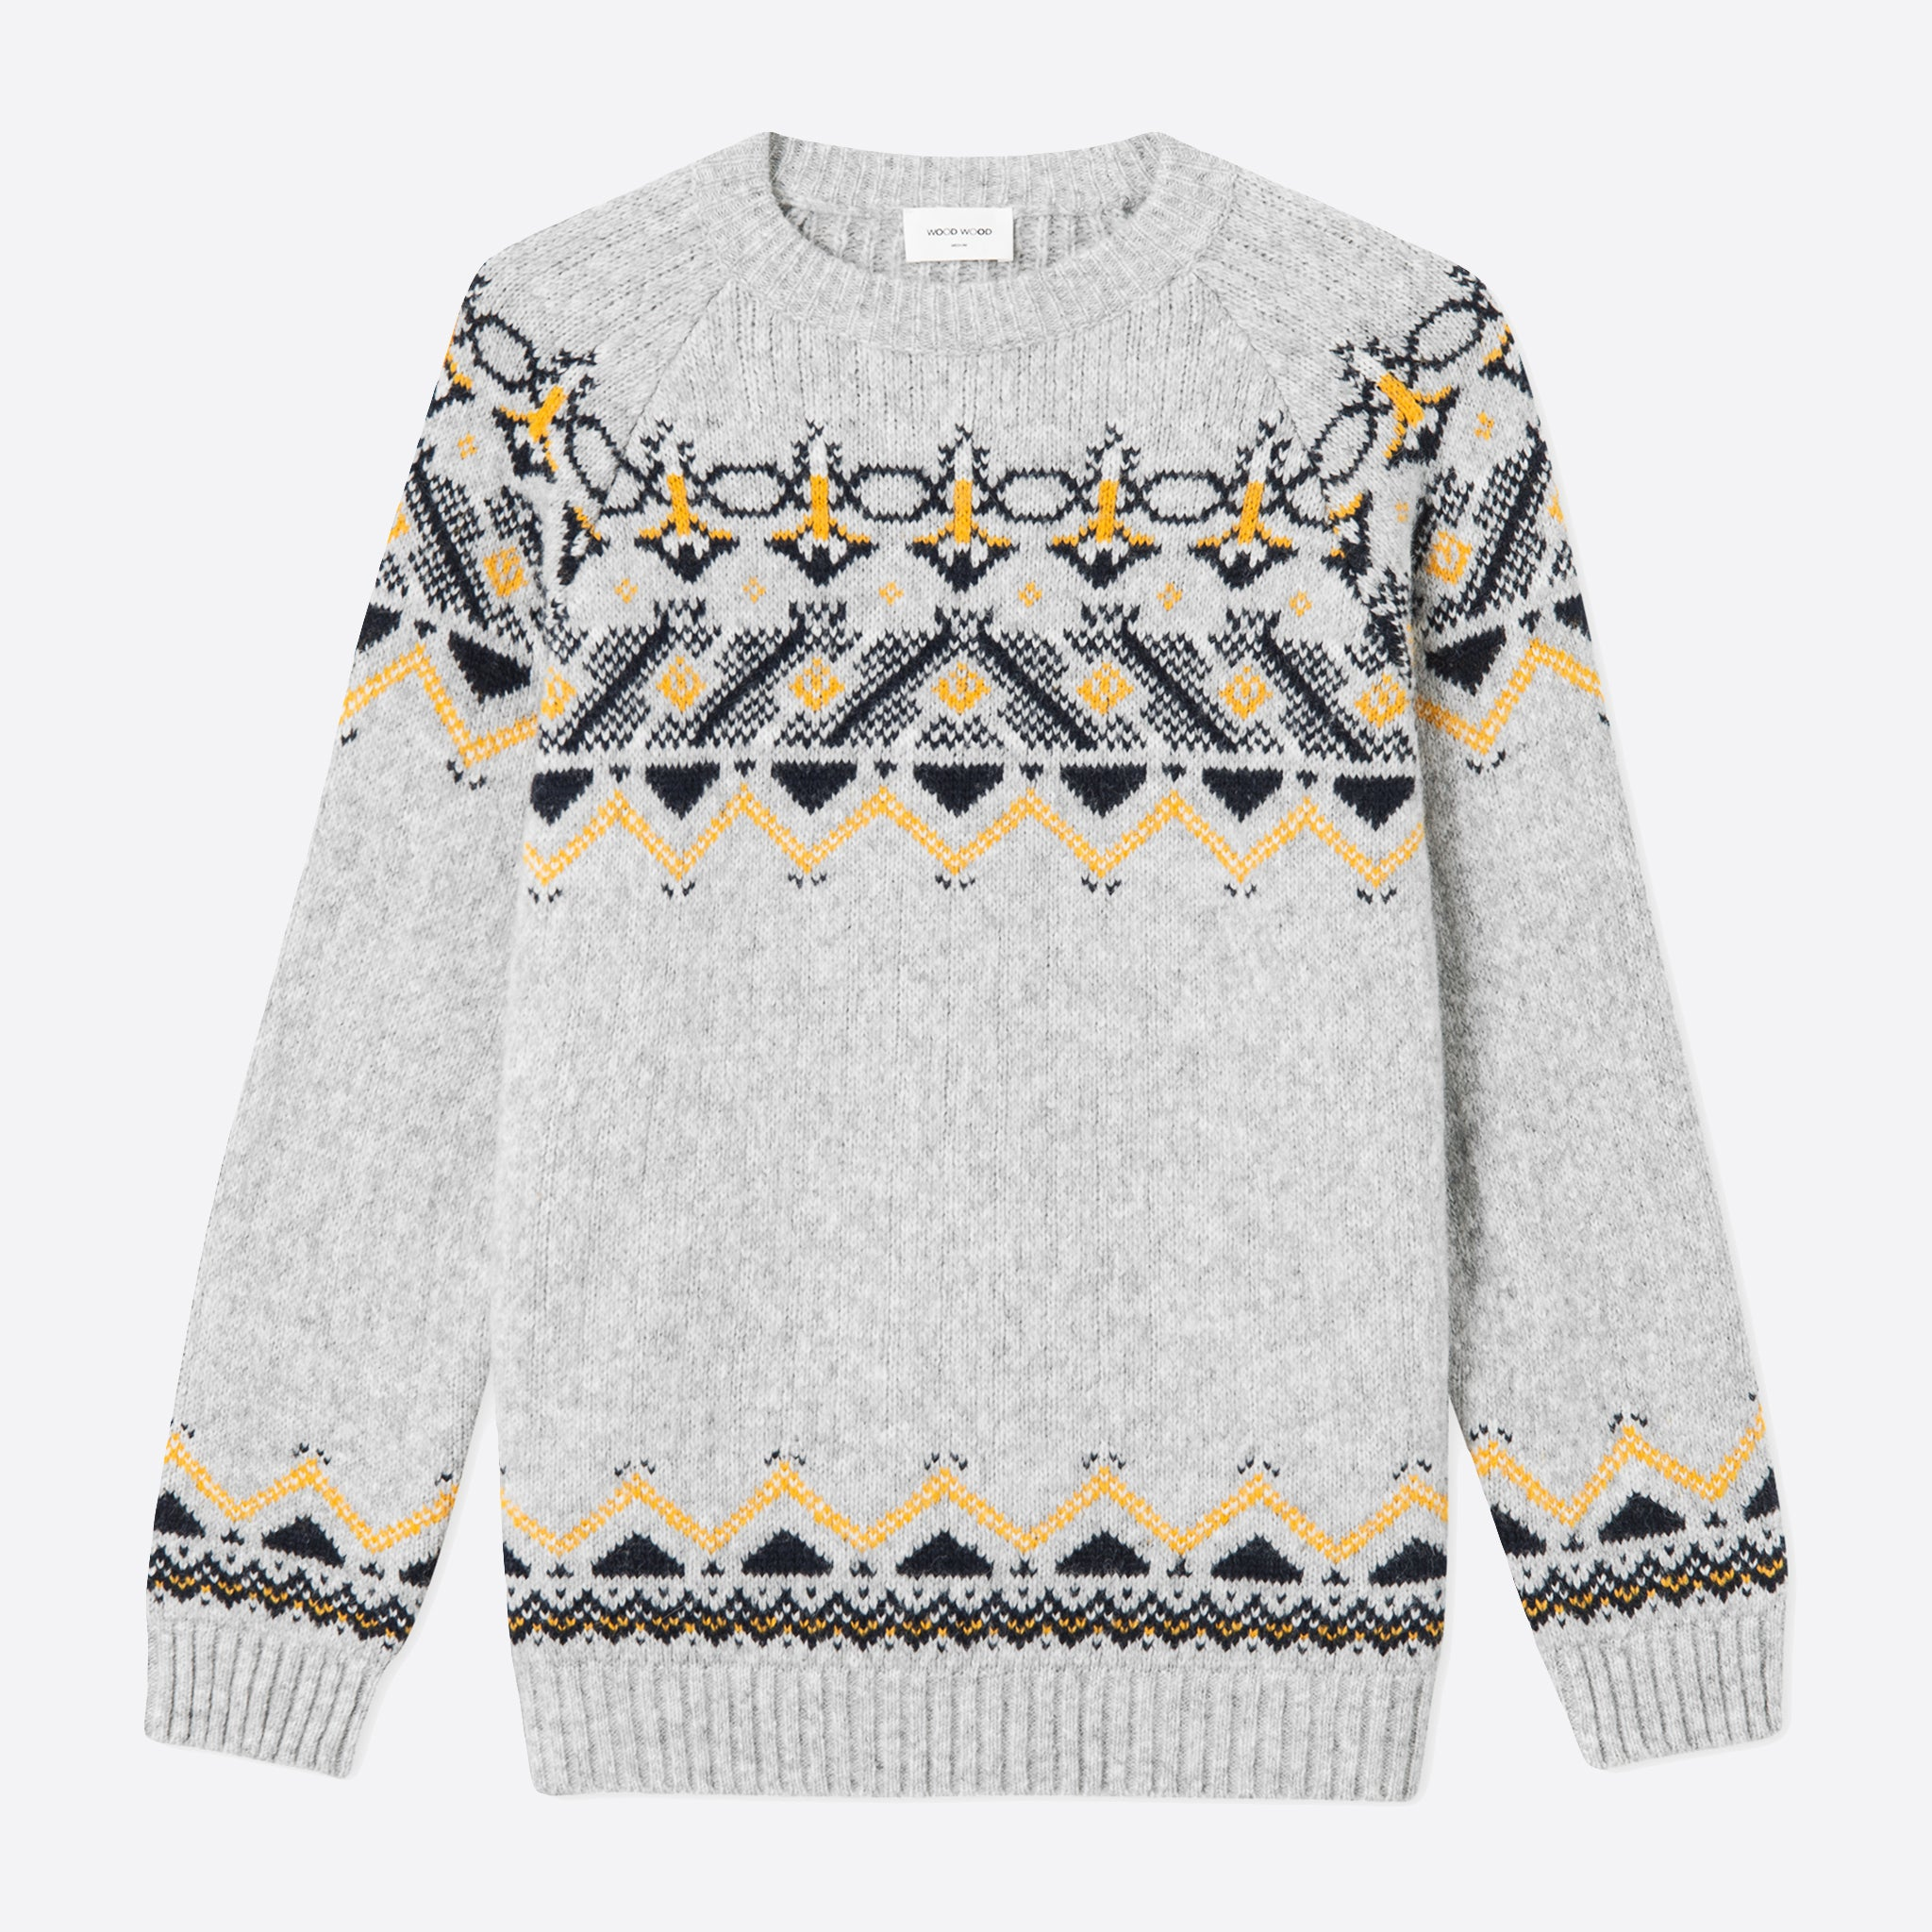 Wood Wood Gunther Sweater in Grey Jacquard